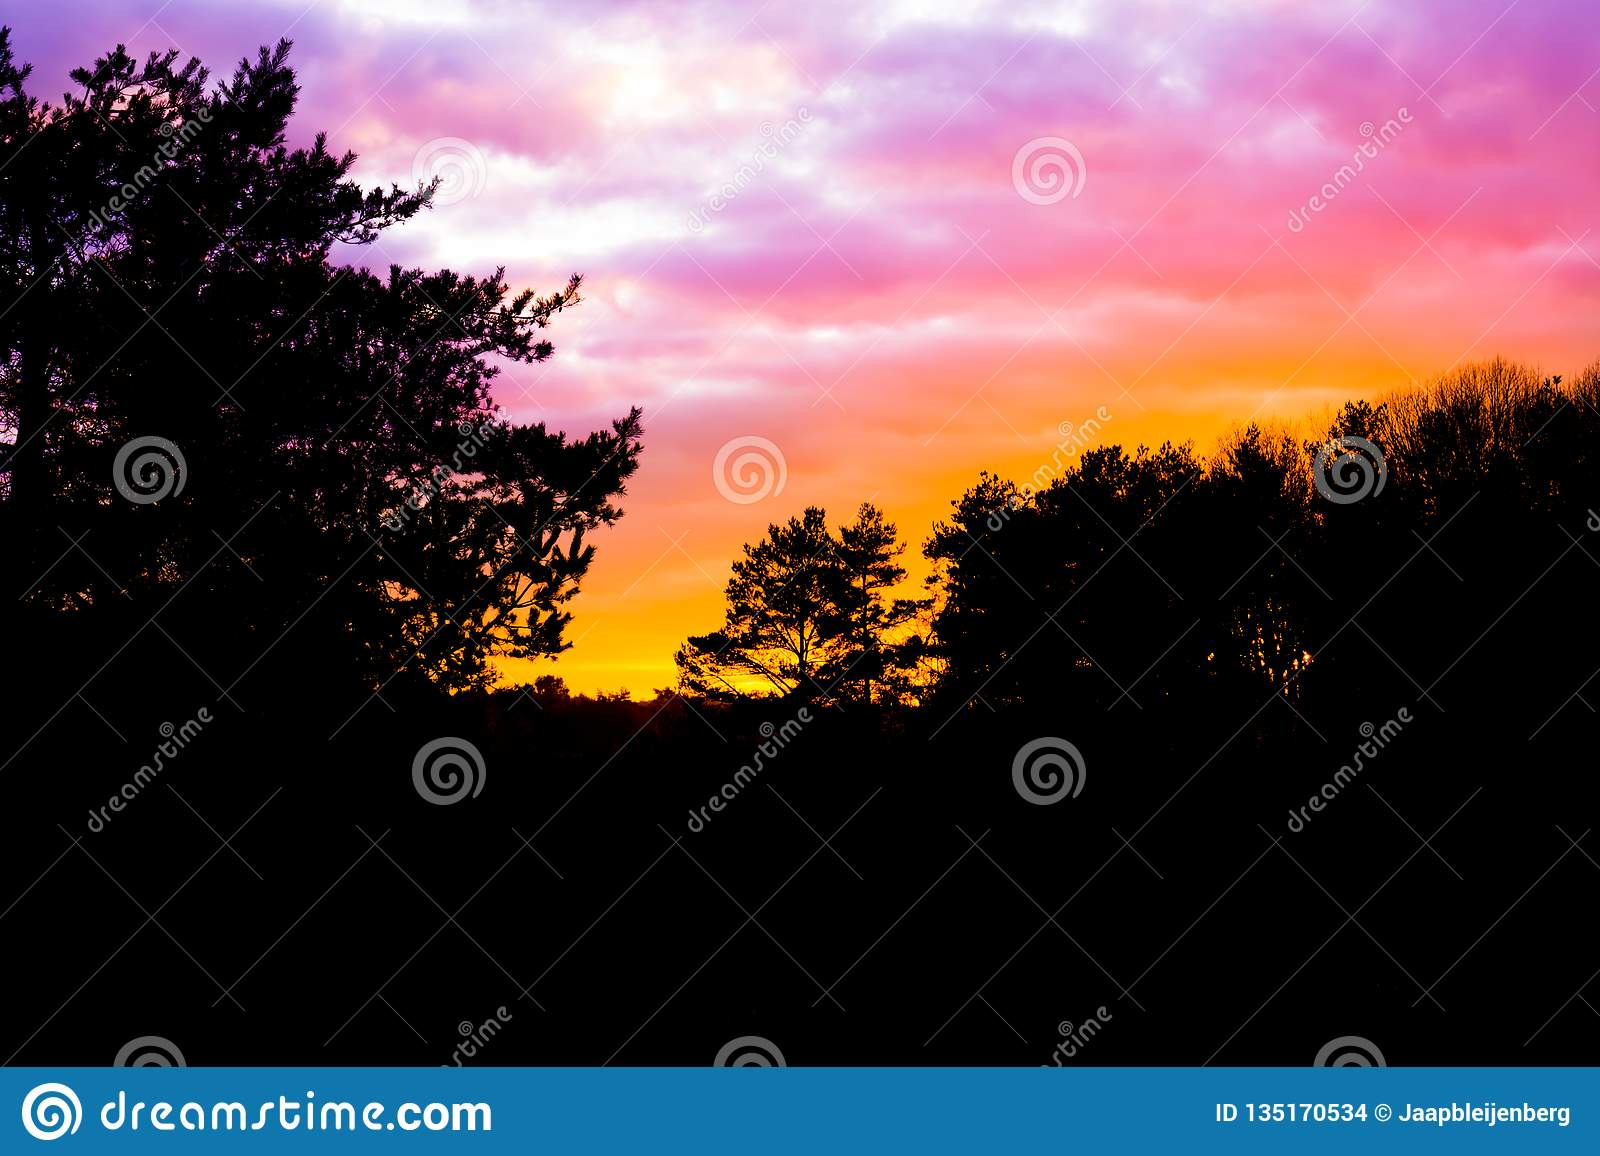 Dark heather landscape in the forest with nacreous clouds that color the sky, a rare weather phenomenon